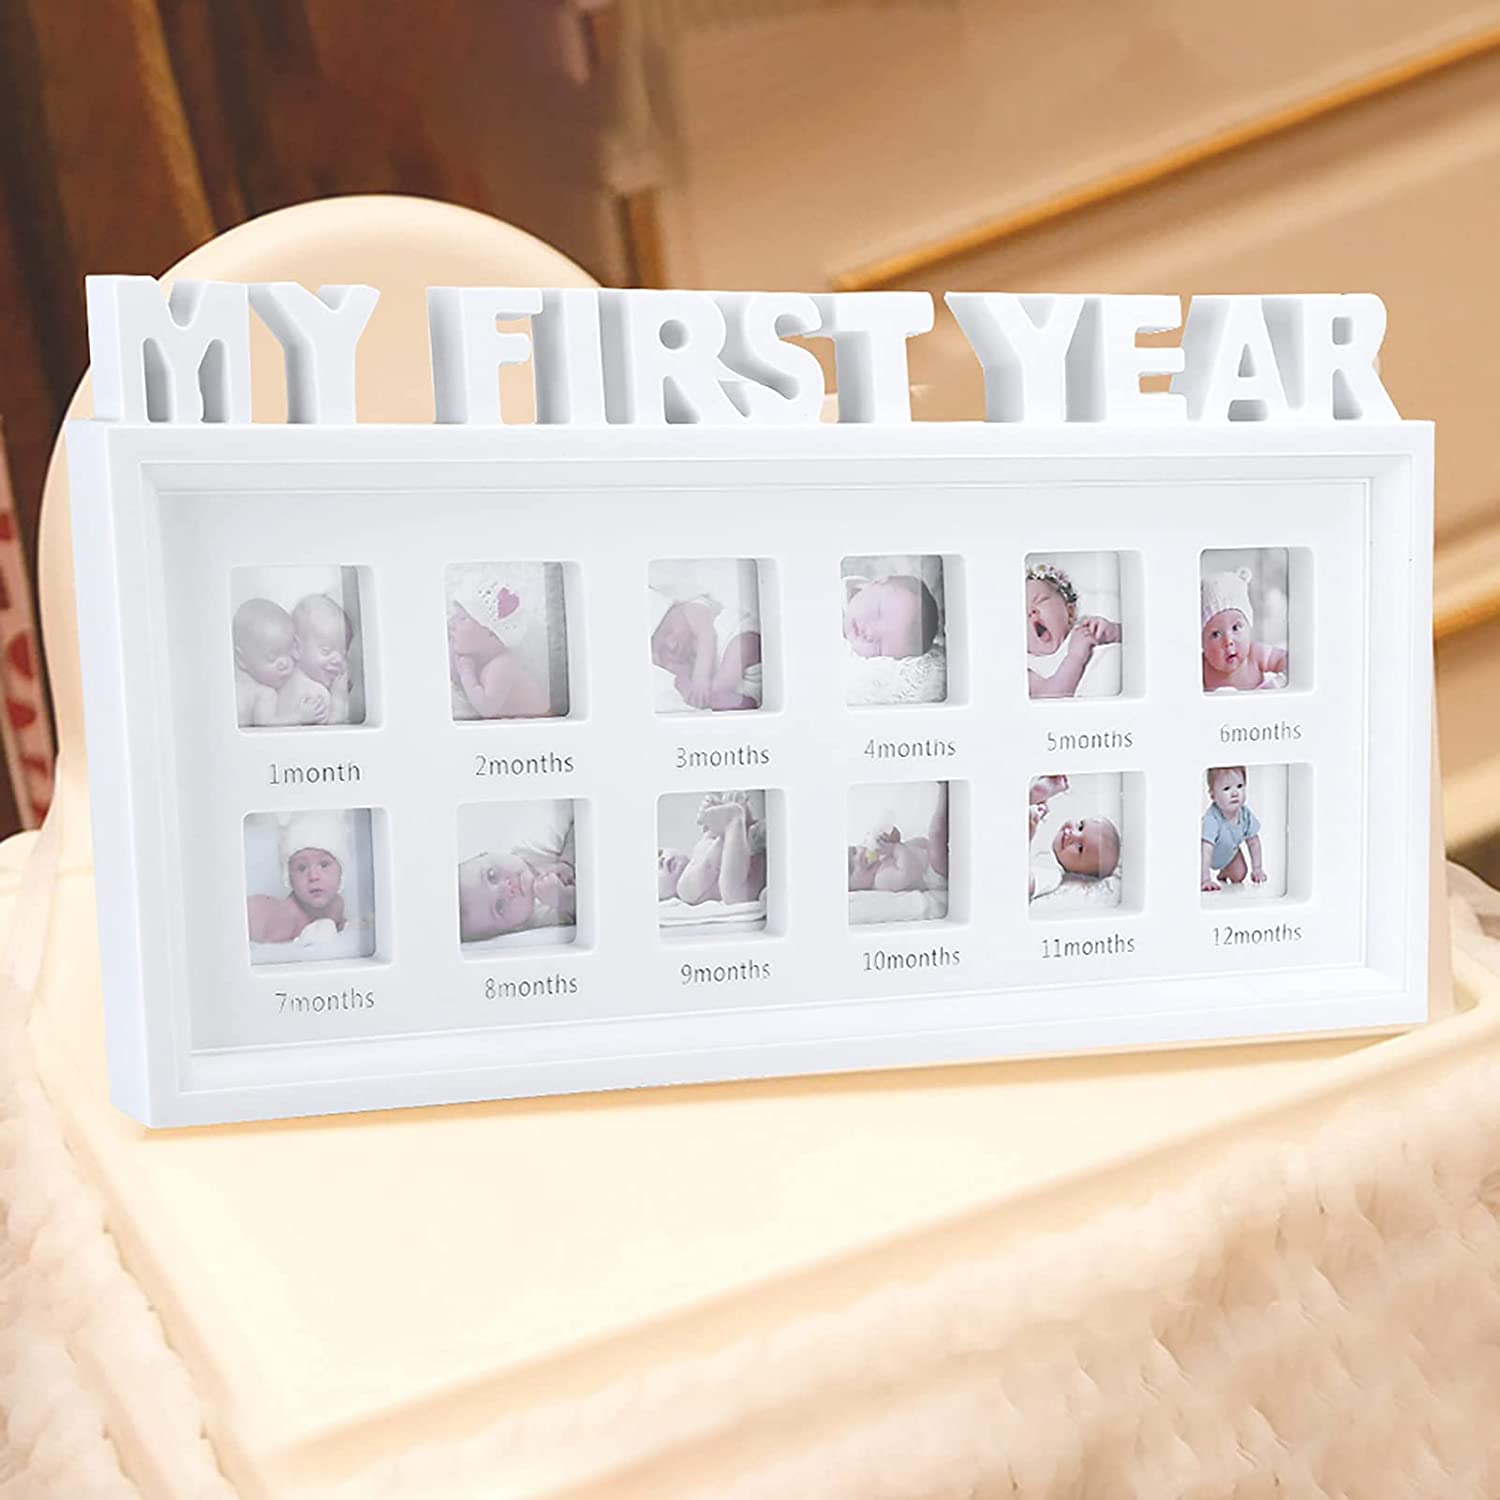 Evonecy Photo Brand Cheap Sale Venue Frames Picture Wall with Frame Brac Trust